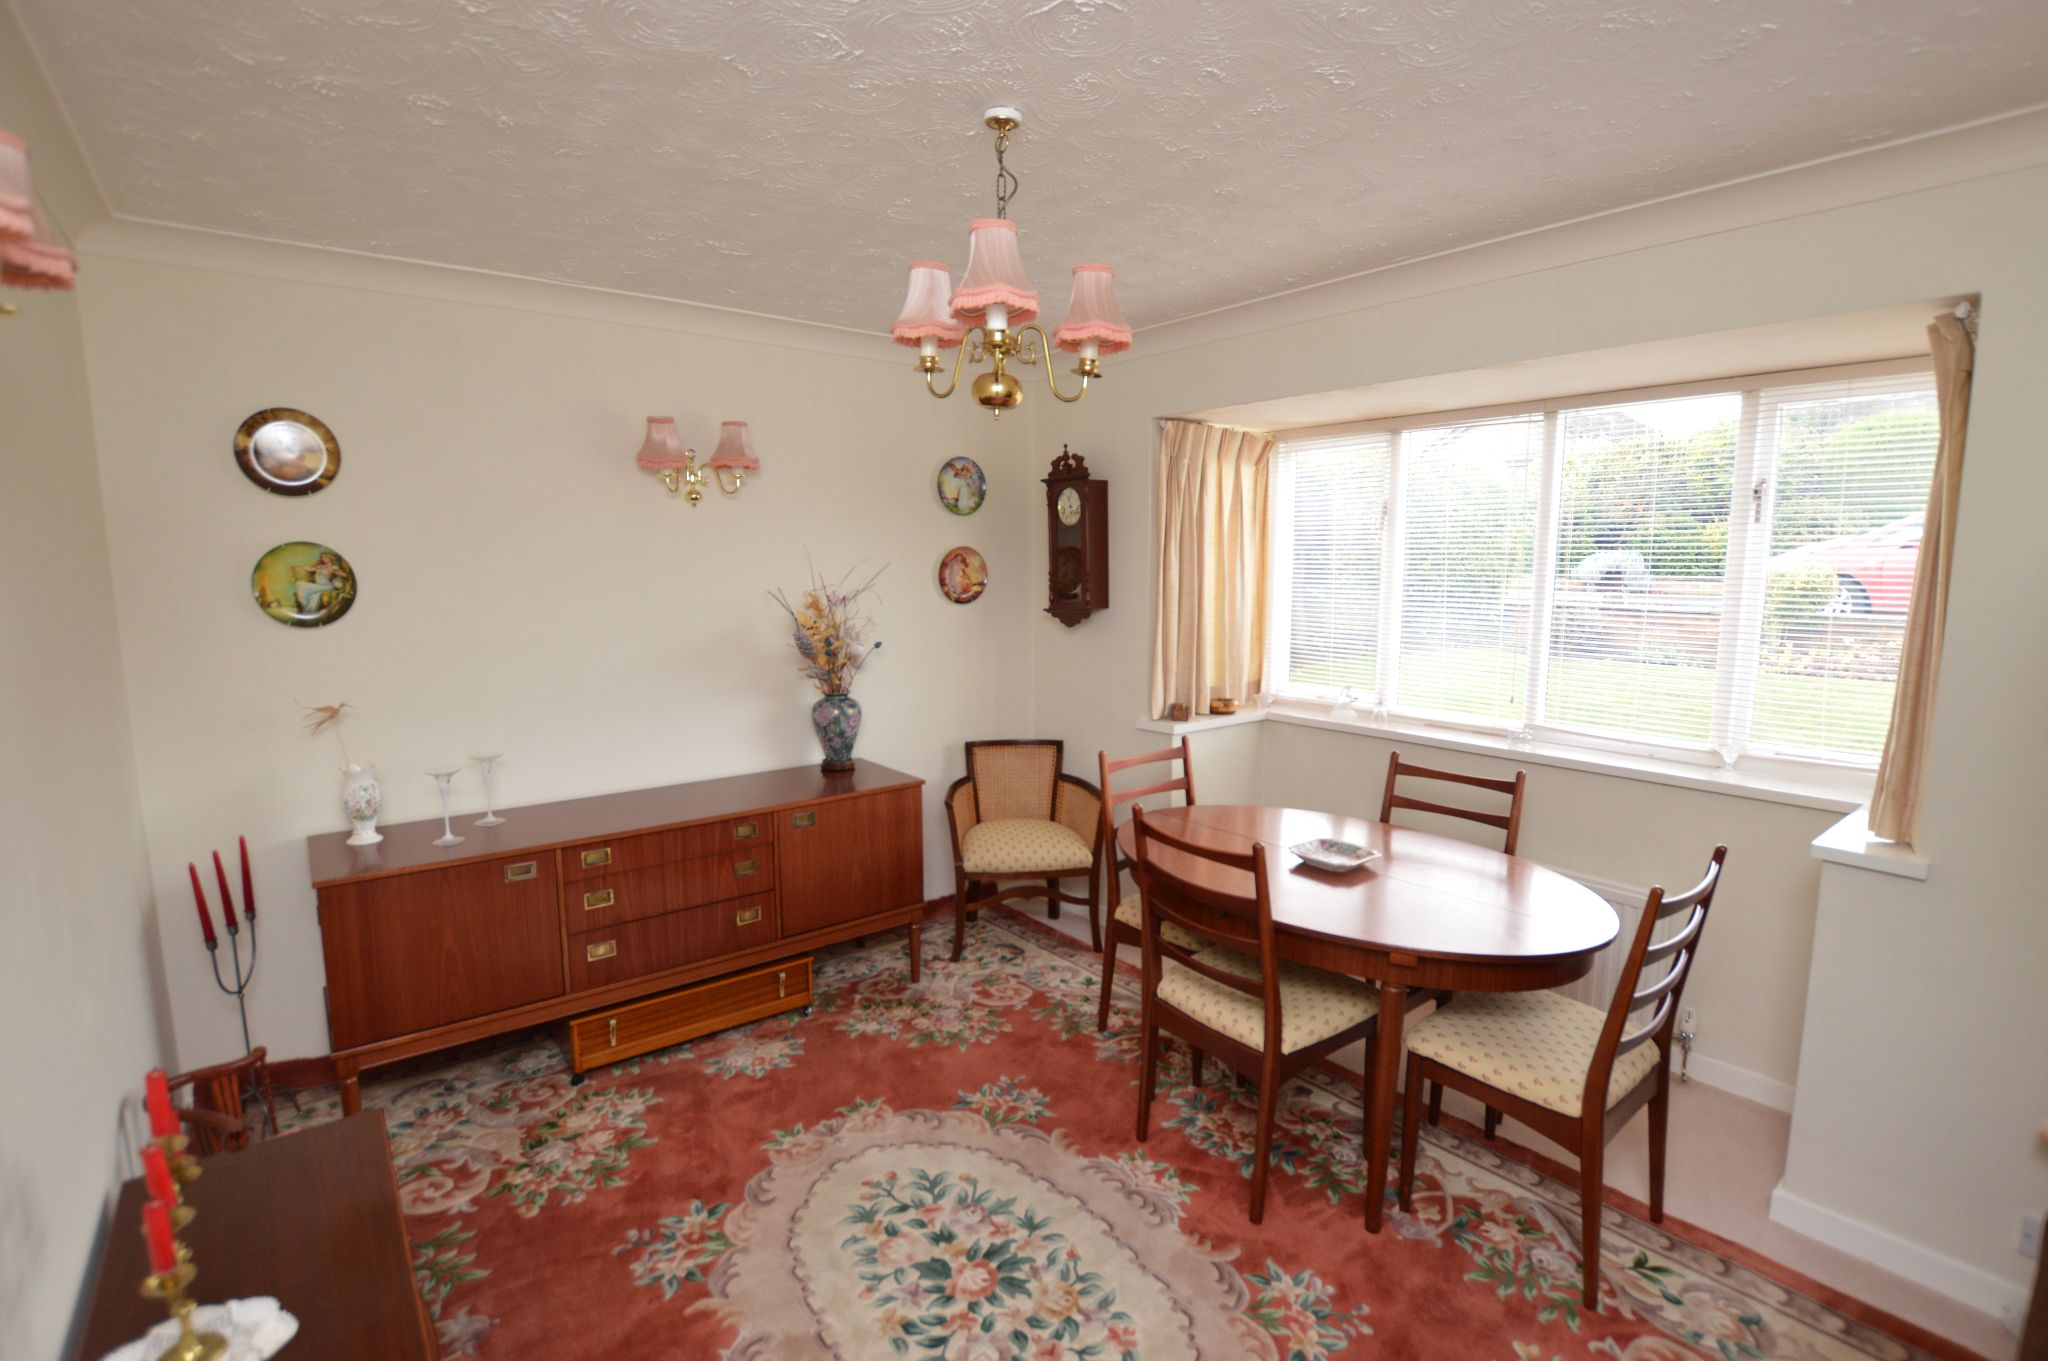 4 bedroom detached house For Sale in Abergele - Dining Room